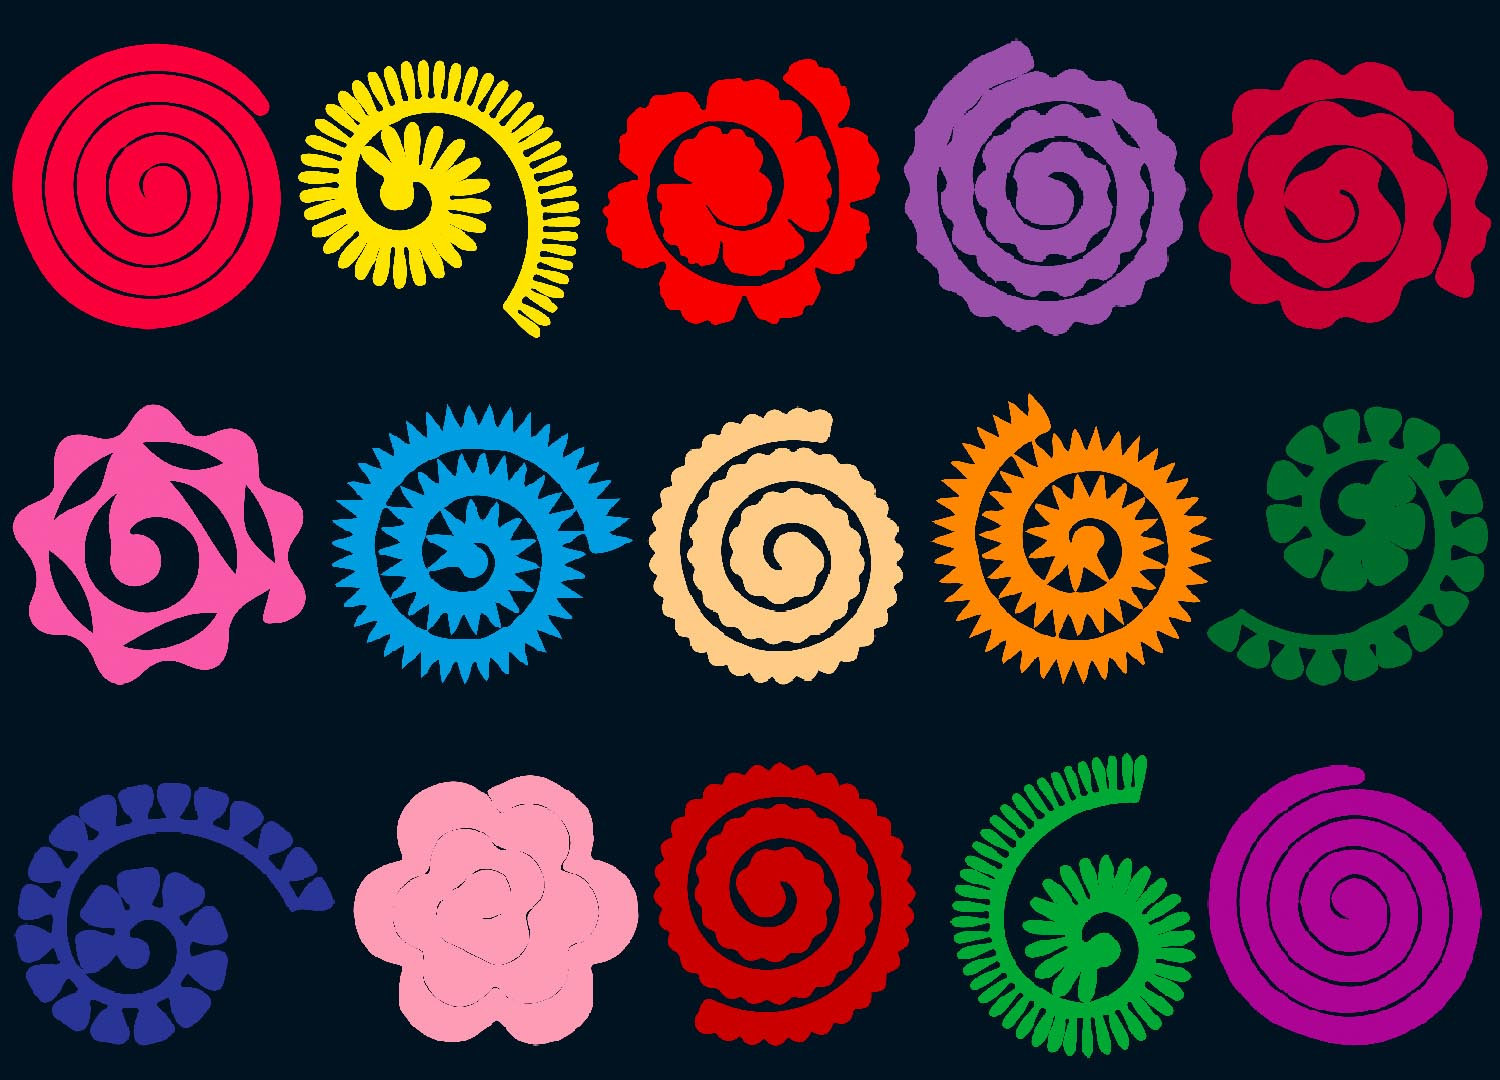 Rolled Paper Flowers Svg Png Epsrolled Paper Flowers Etsy